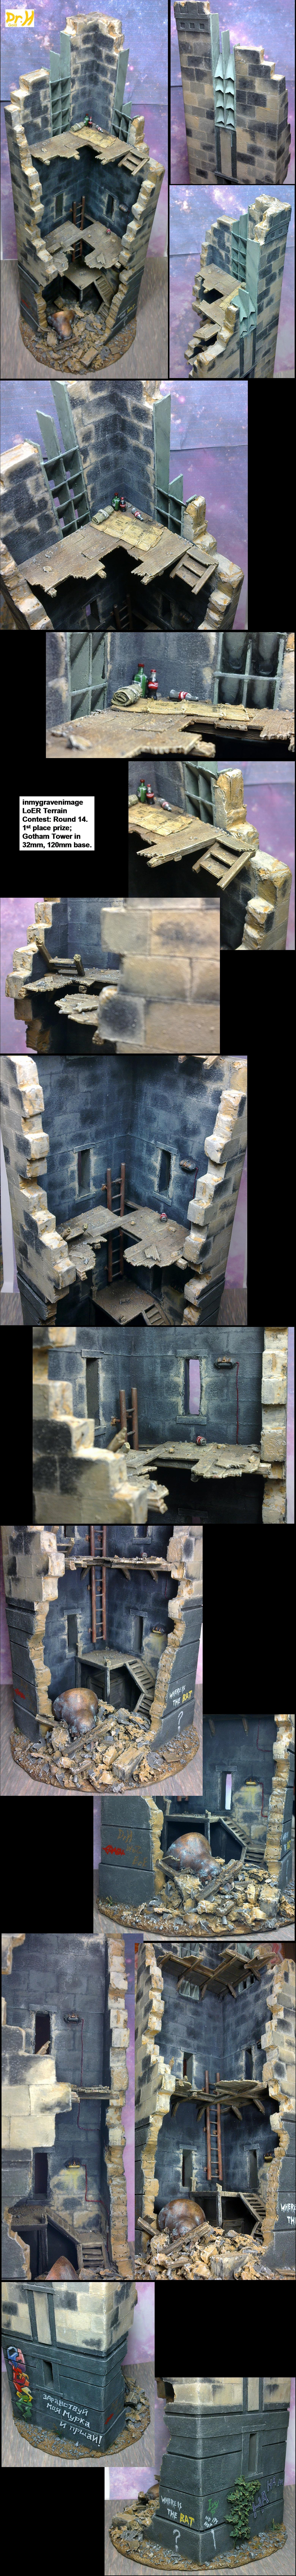 Graven's tower final 2of3